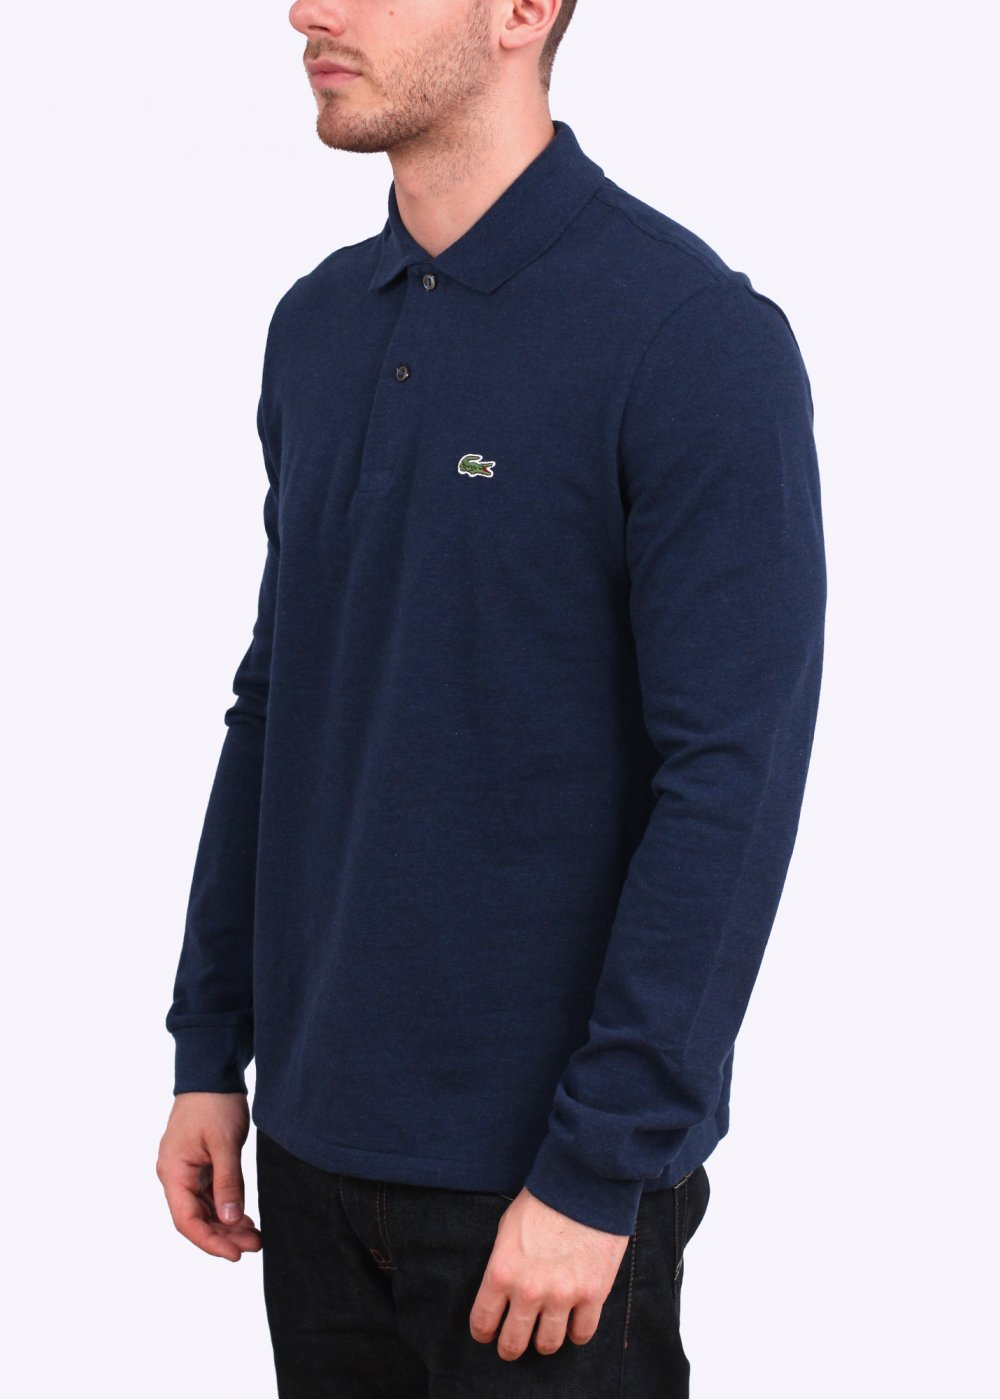 Mens Polo Shirts Lacoste Long Sleeve Best